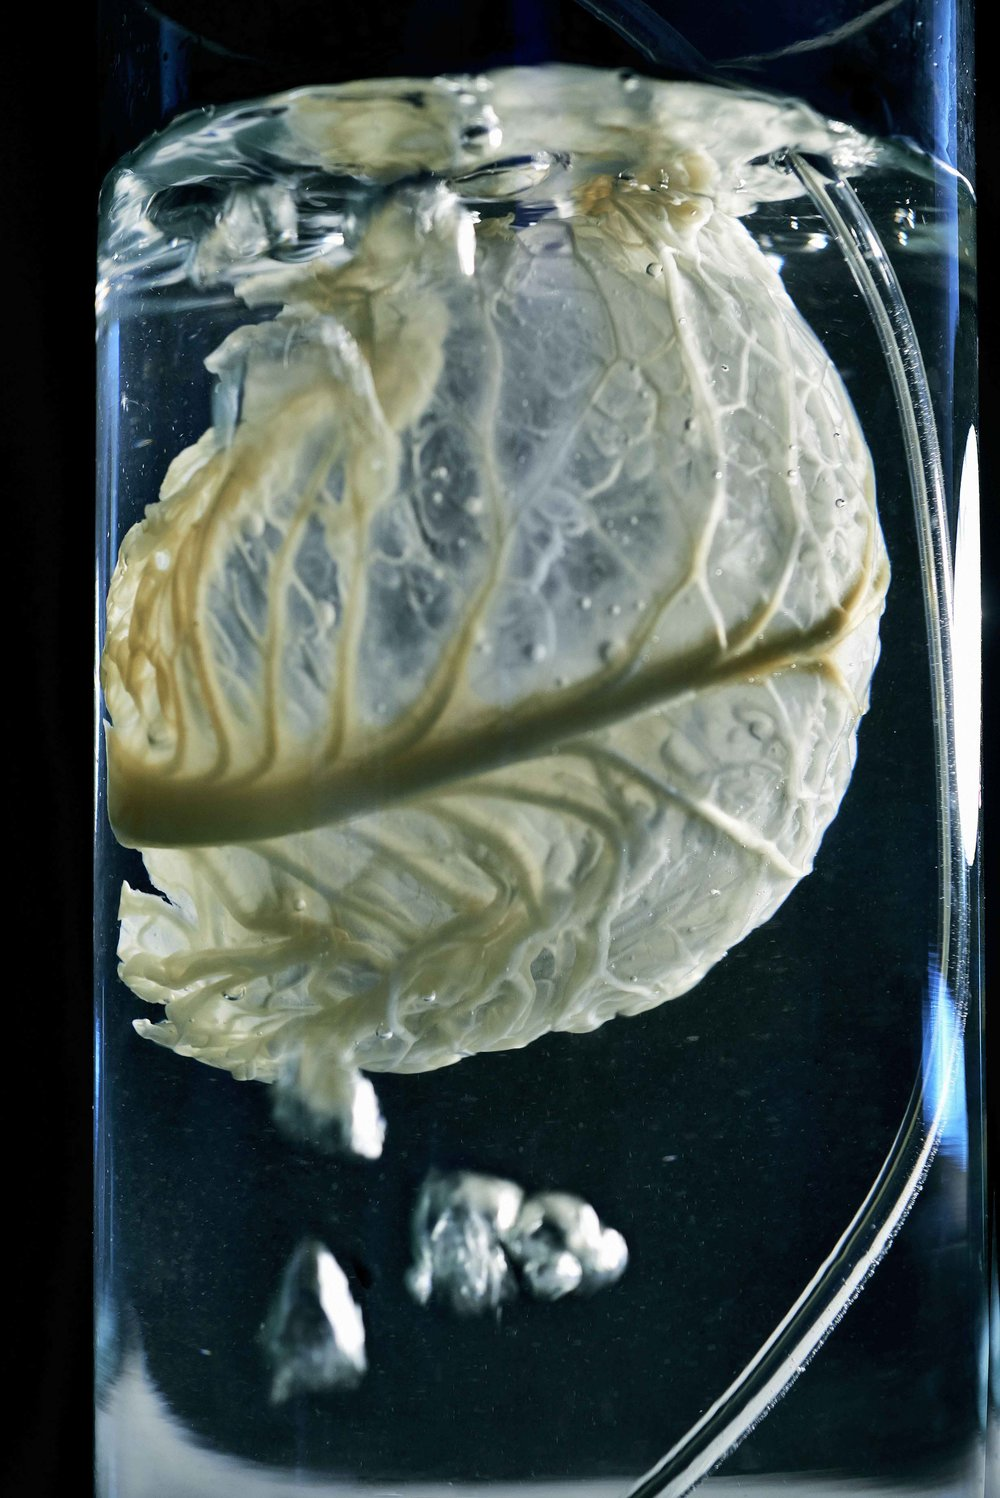 Ectosymbiont,  by Angela Mathis, uses the decellularization of plants, to create scaffolds for human tissue engineering.